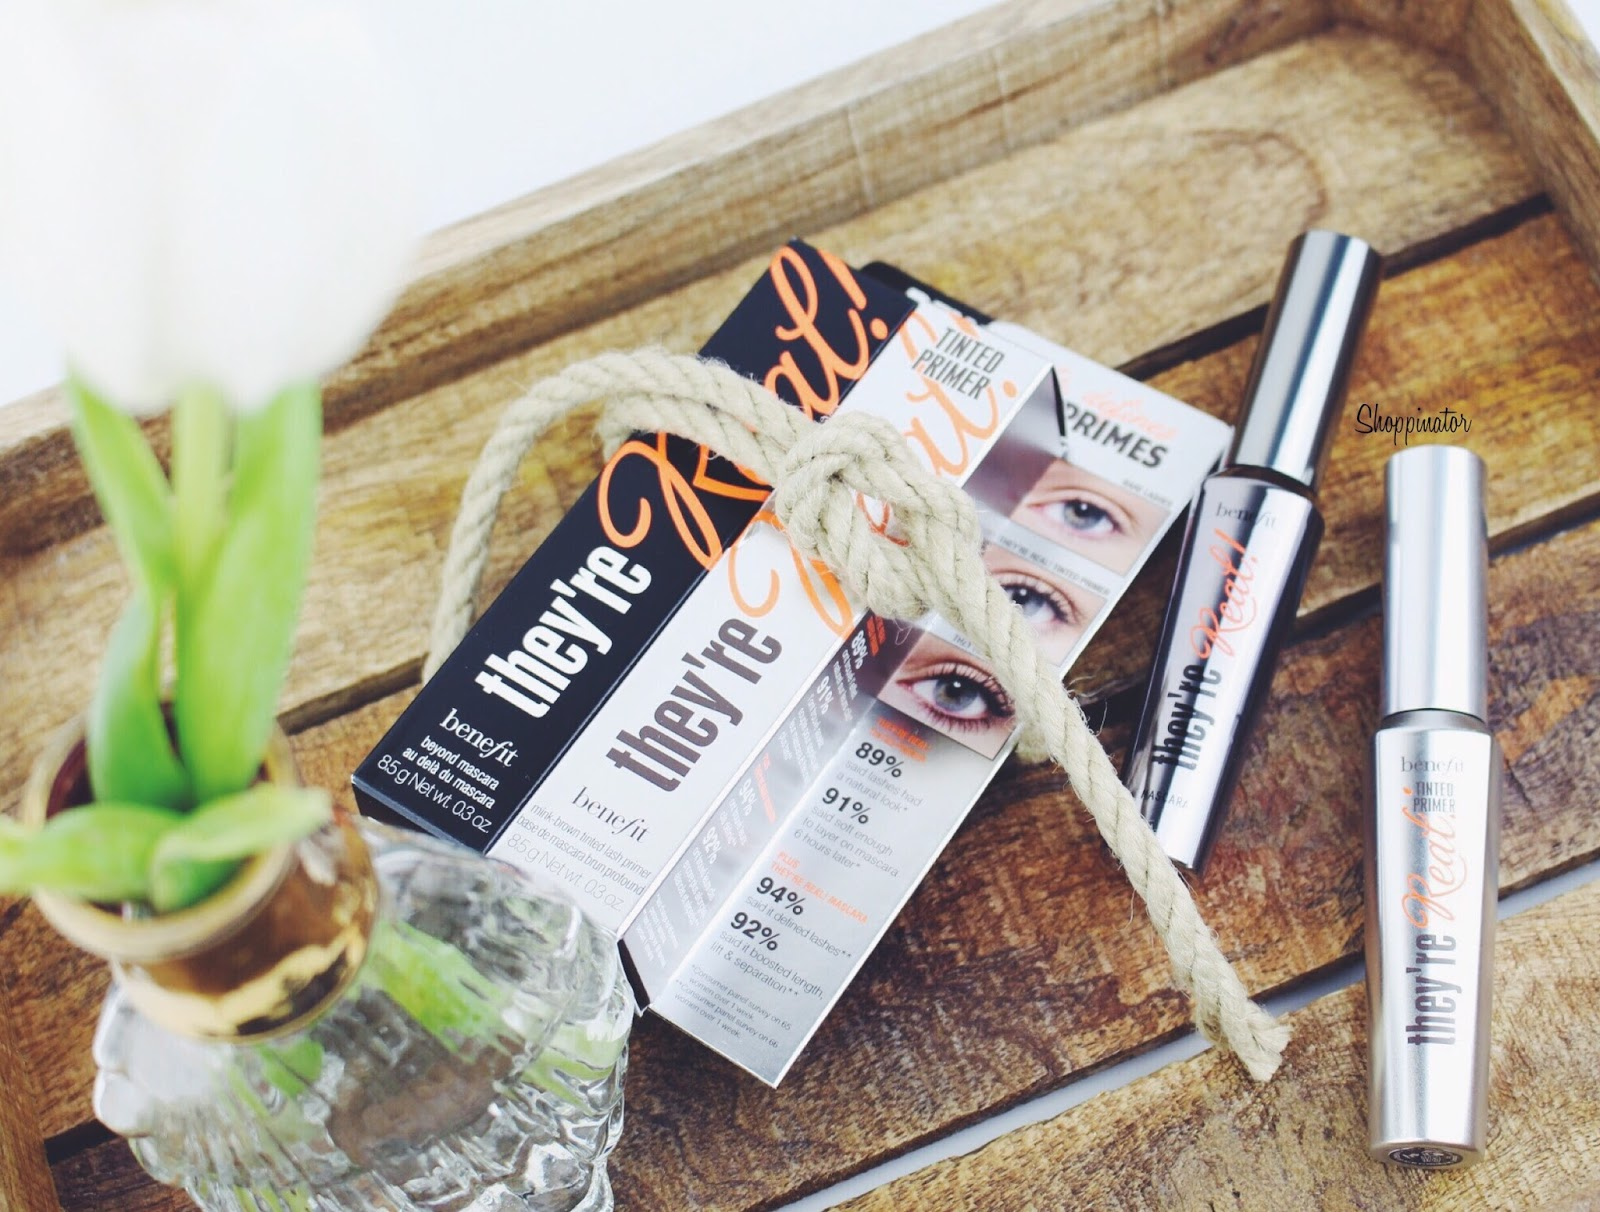 Benefit-Tinted-Primer-Mascara-Review-They're-Real-Mascara-Shoppinator-Test-Getestet